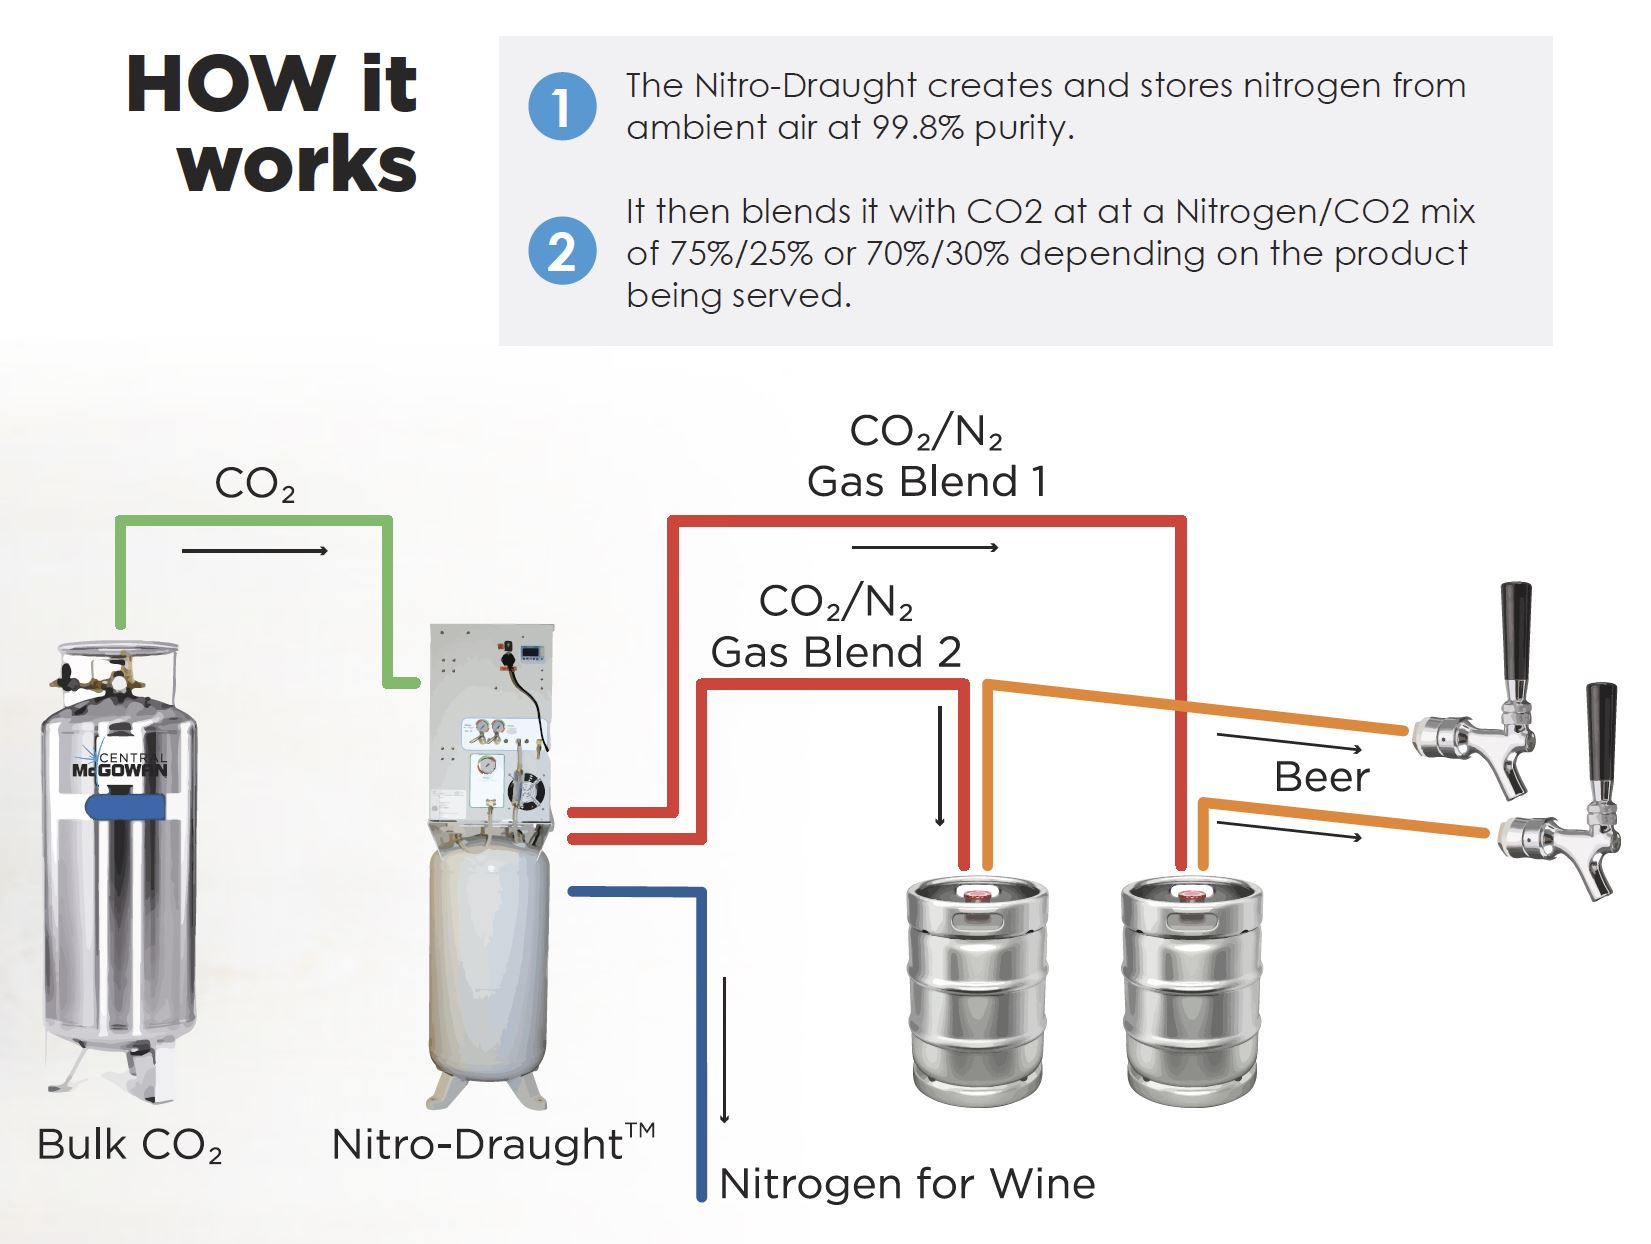 Bulk CO2 Diagram